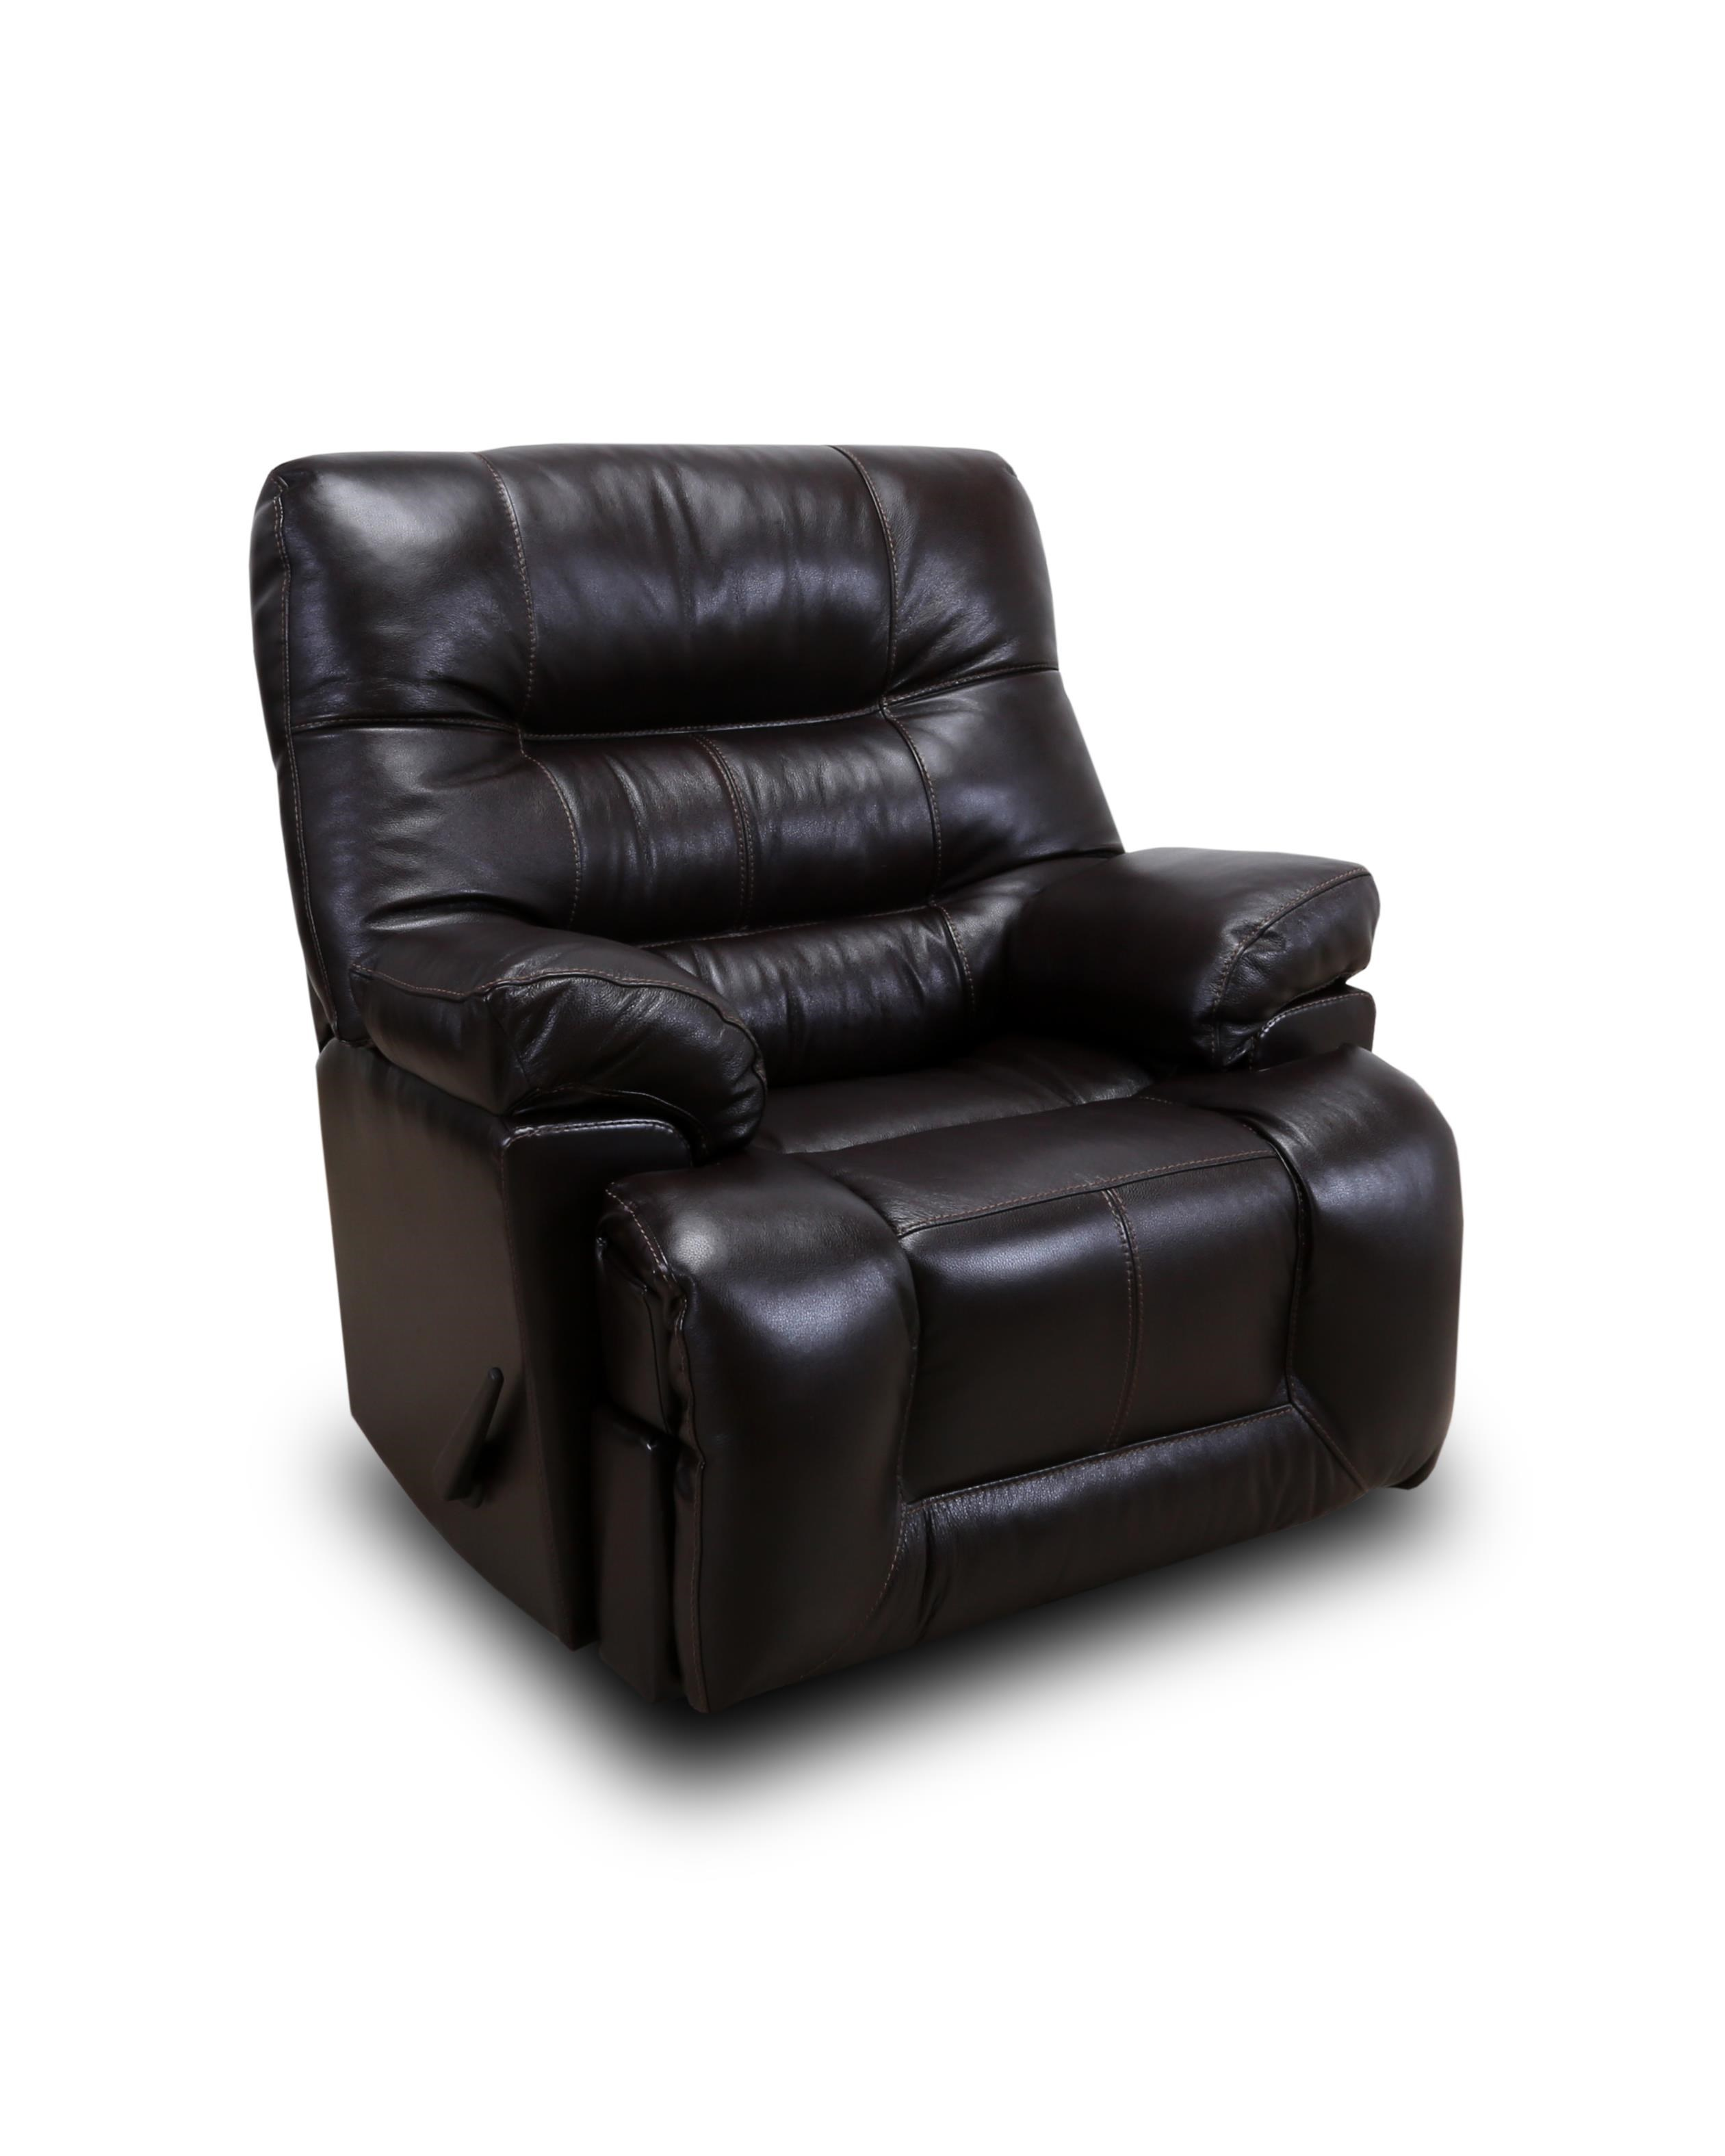 Franklin Recliners Boss Handle Leather Rocker Recliner - Item Number: 4585 LM74-14